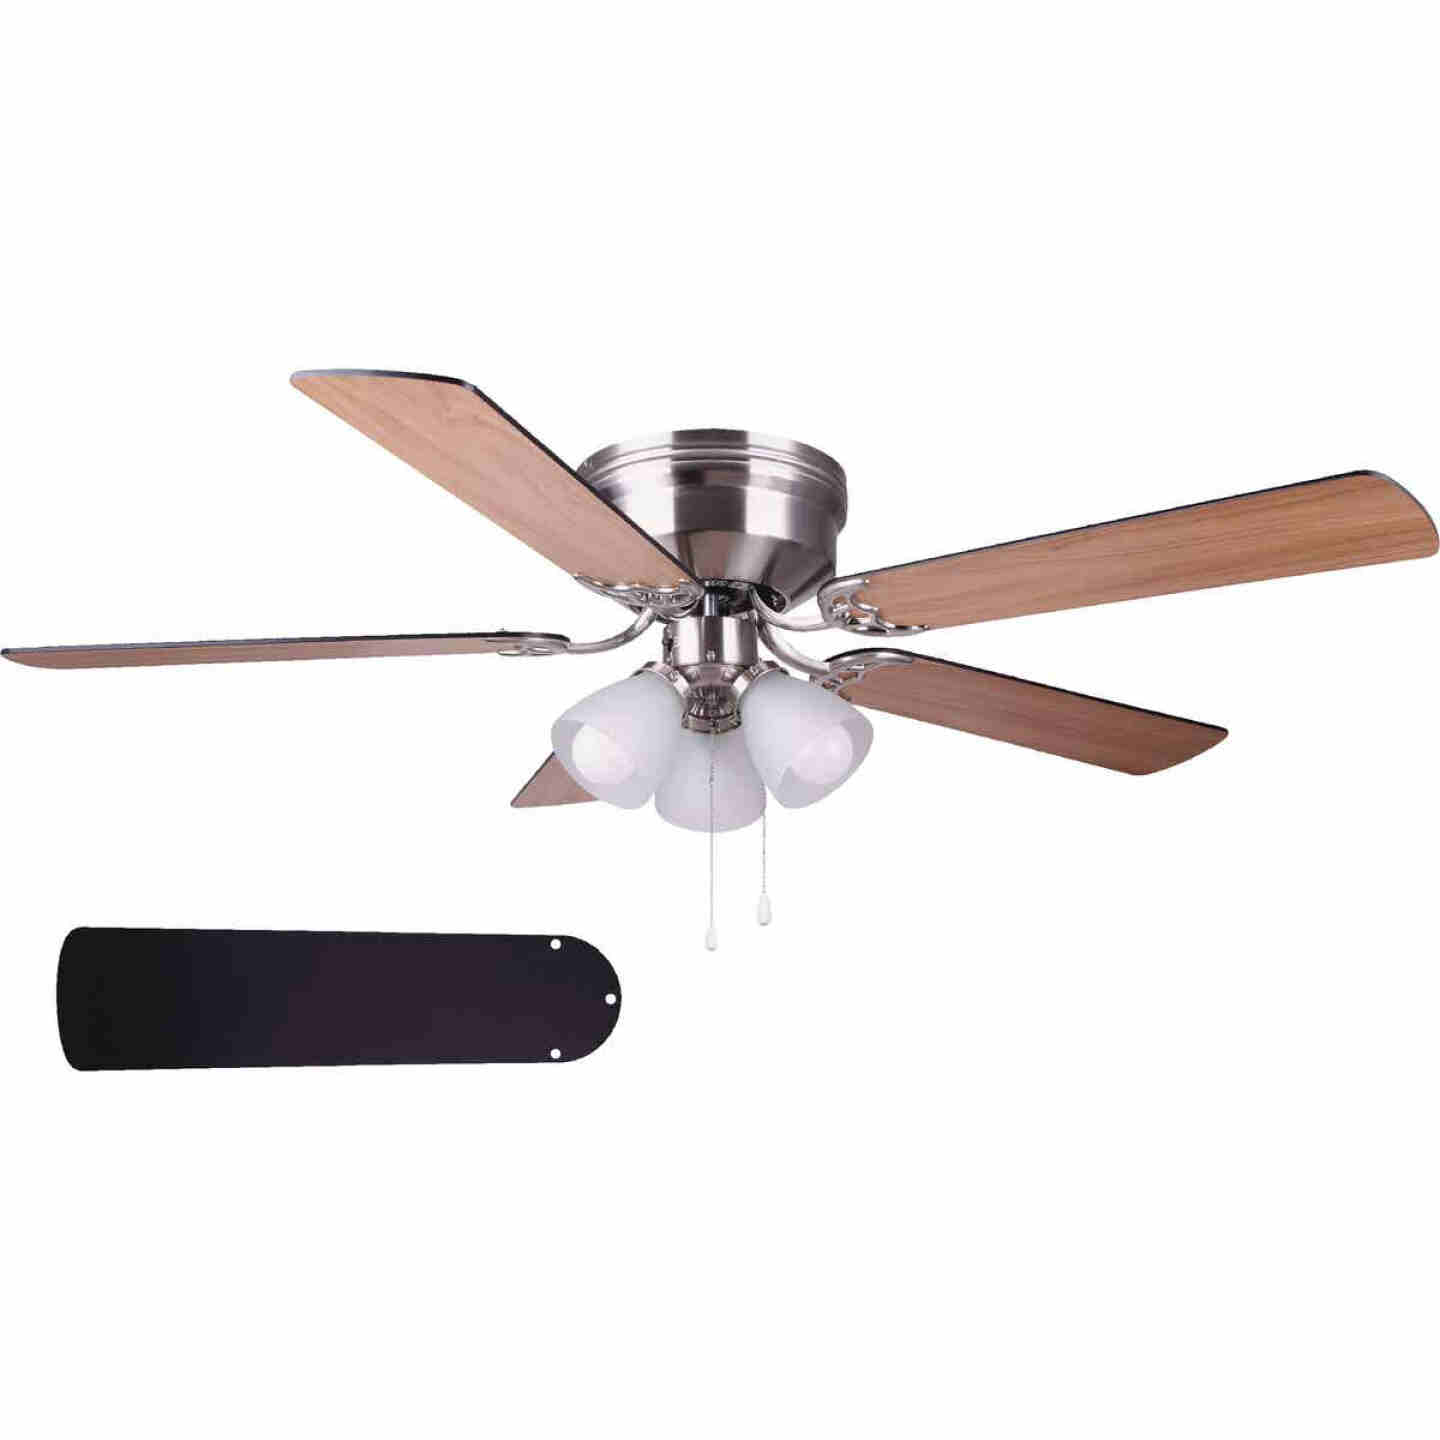 Home Impressions Adobe 52 In. Brushed Nickel Ceiling Fan with Light Kit Image 1